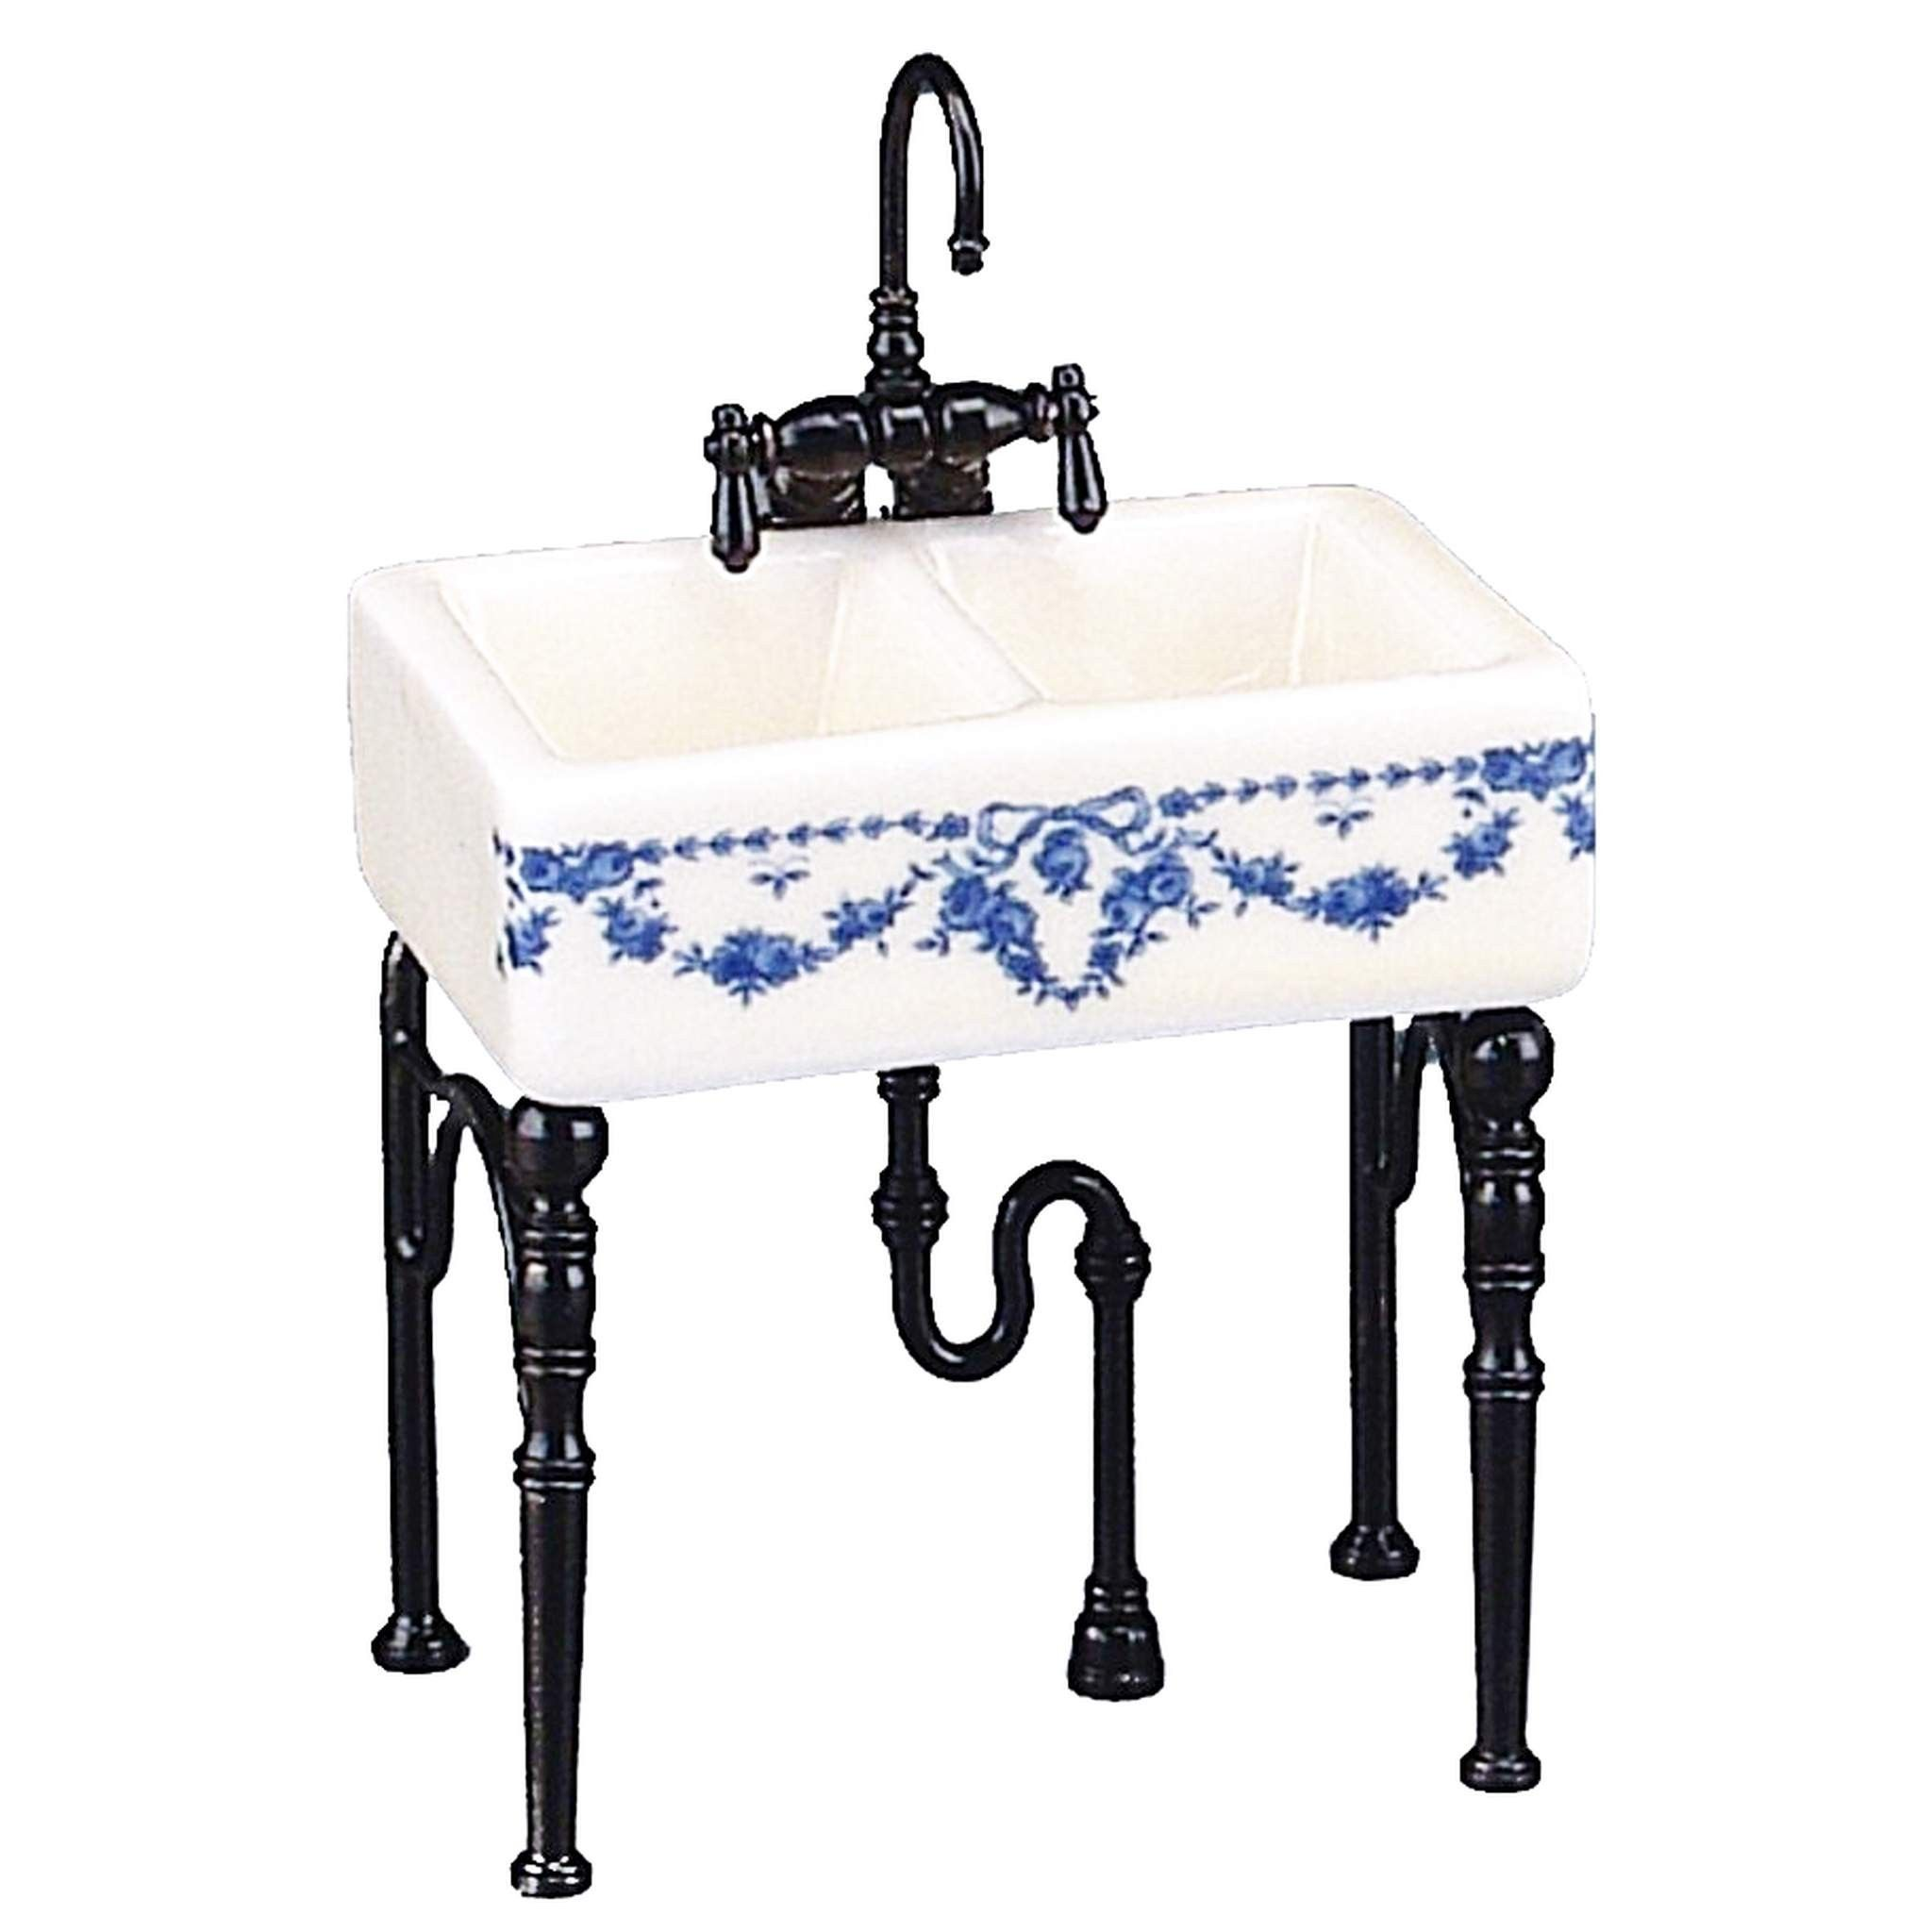 Reutters Small Kitchen Sink Without Decoration   Doll house and ...